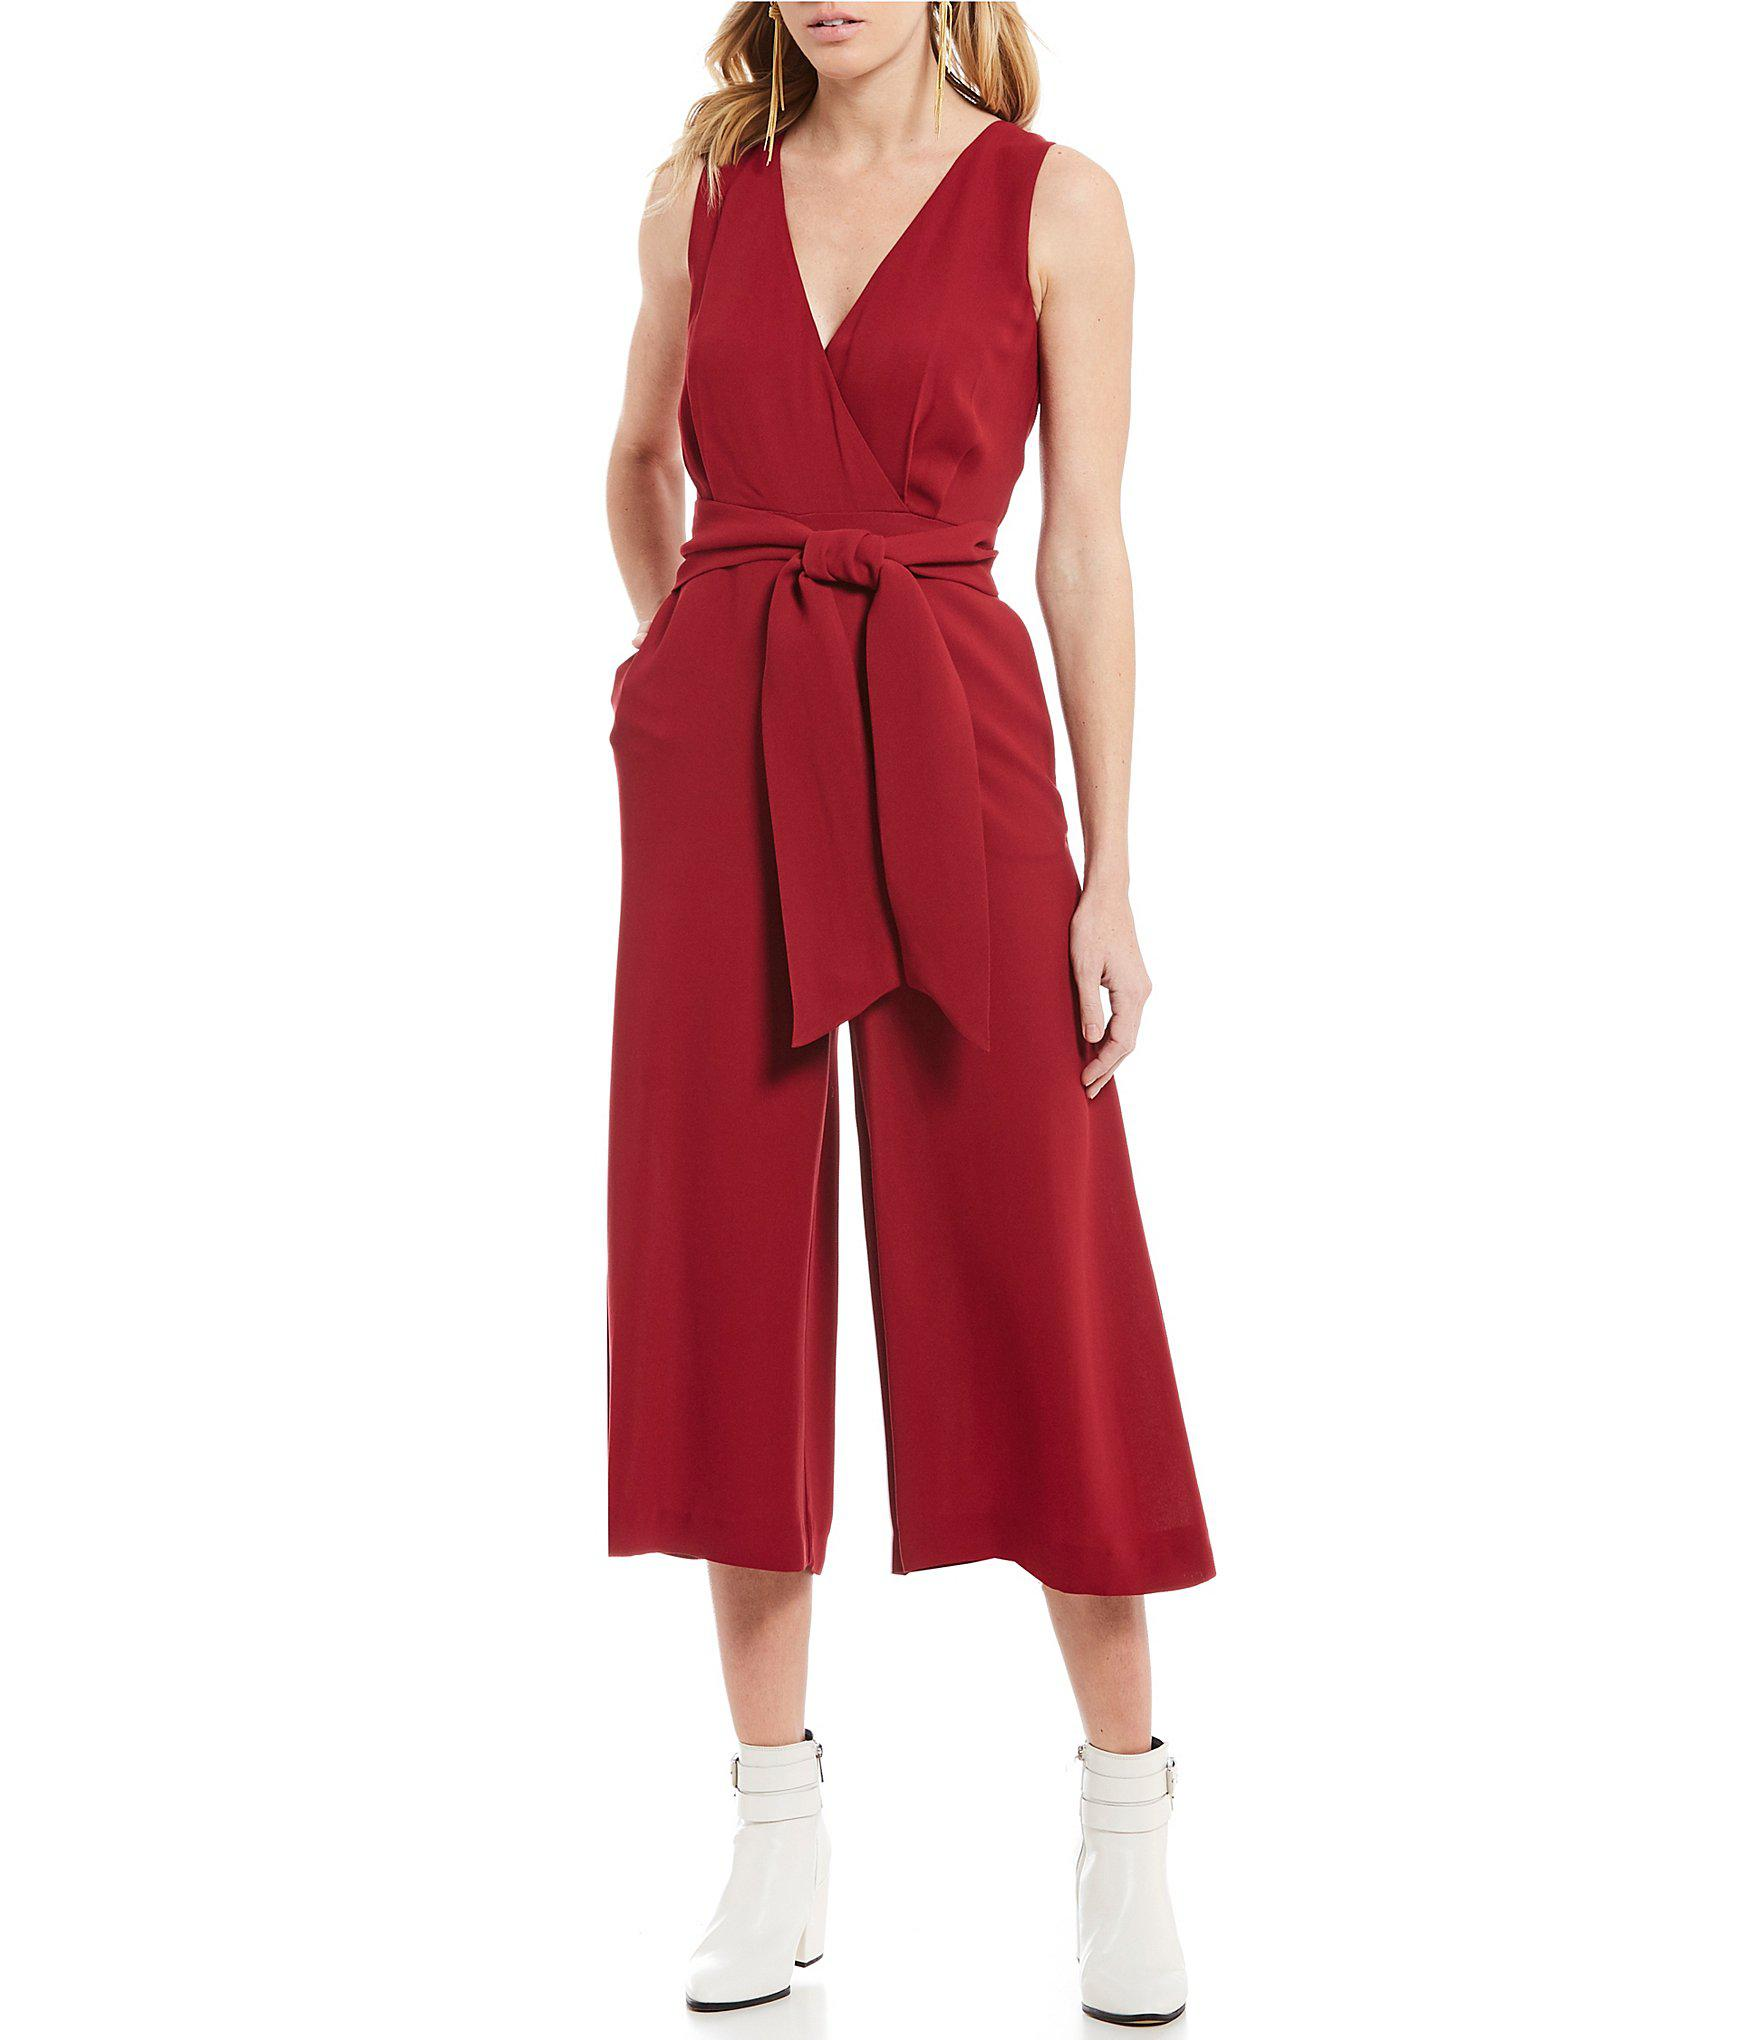 93e3dba18d4 French Connection - Red Bessie Tie Waist Crepe Wide Leg Culotte Jumpsuit -  Lyst. View fullscreen